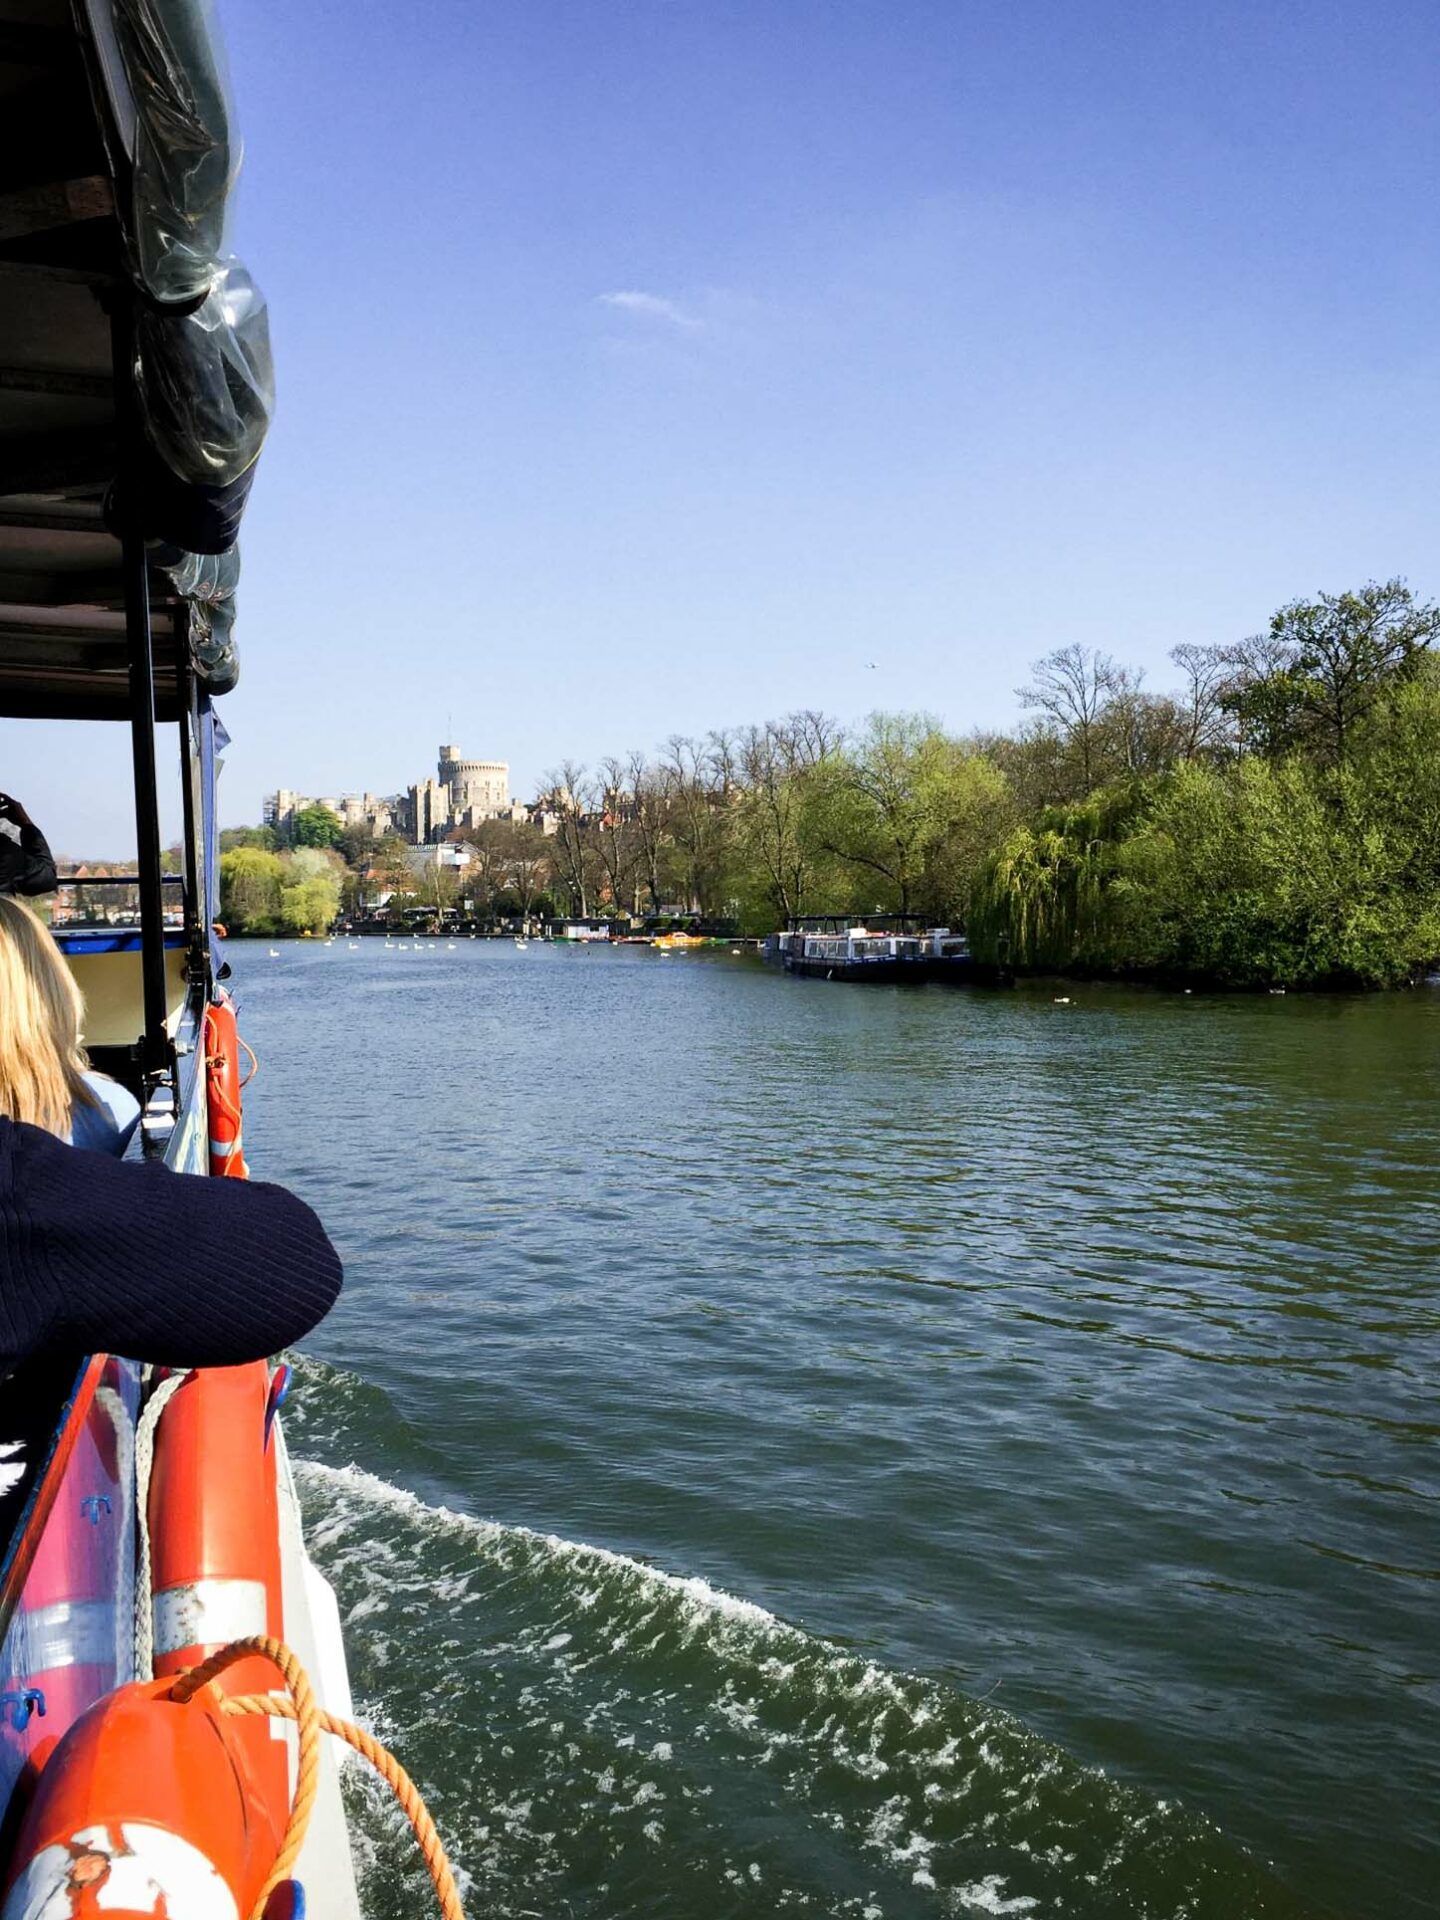 Windsor Boat trips along the River Thames are great alternative way of seeing the town. There are some great views of the castle from here.